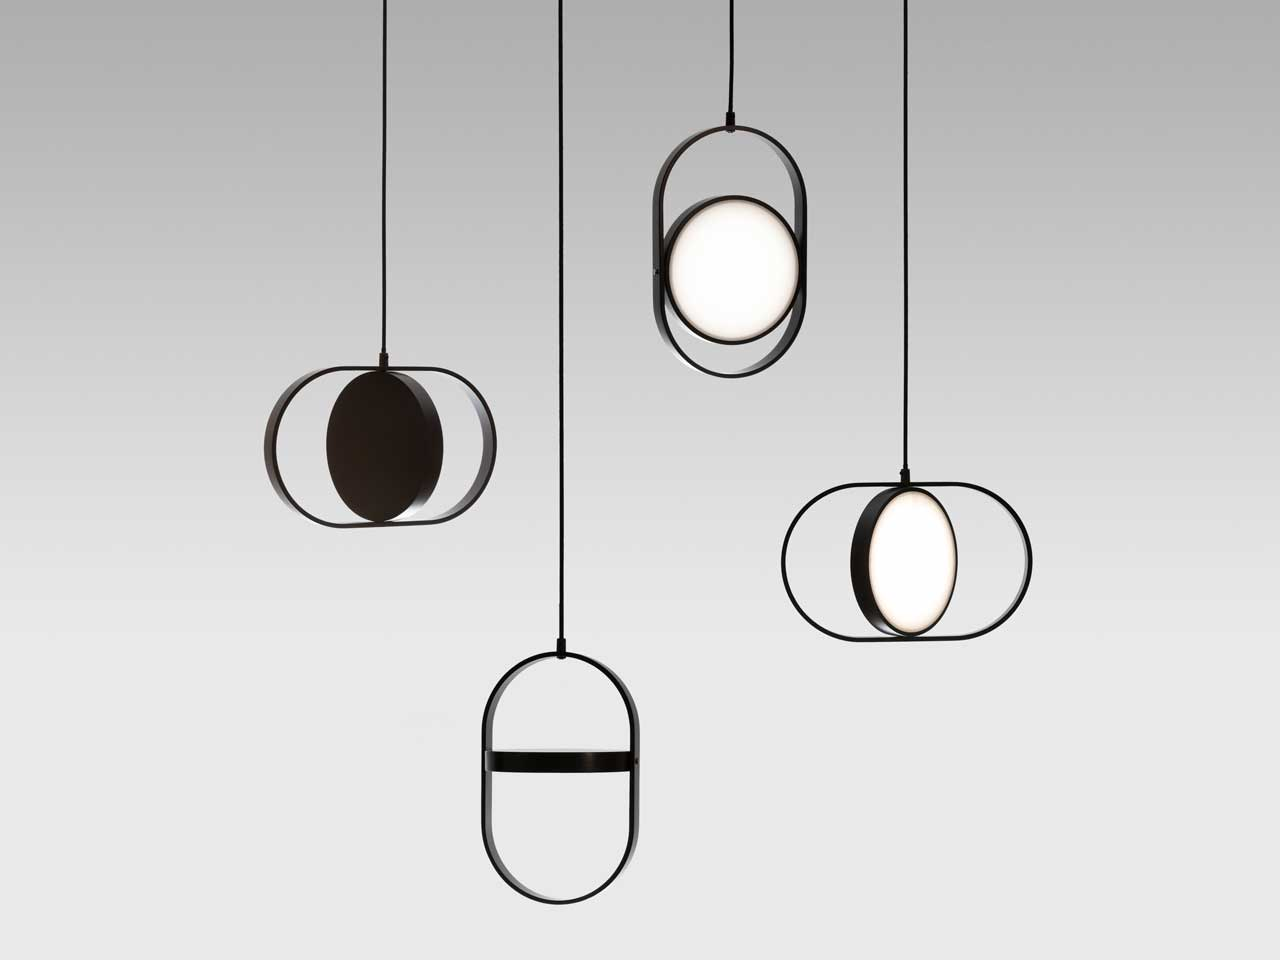 wind vibia light vilardell pendant lighting products by for clippings white jordi